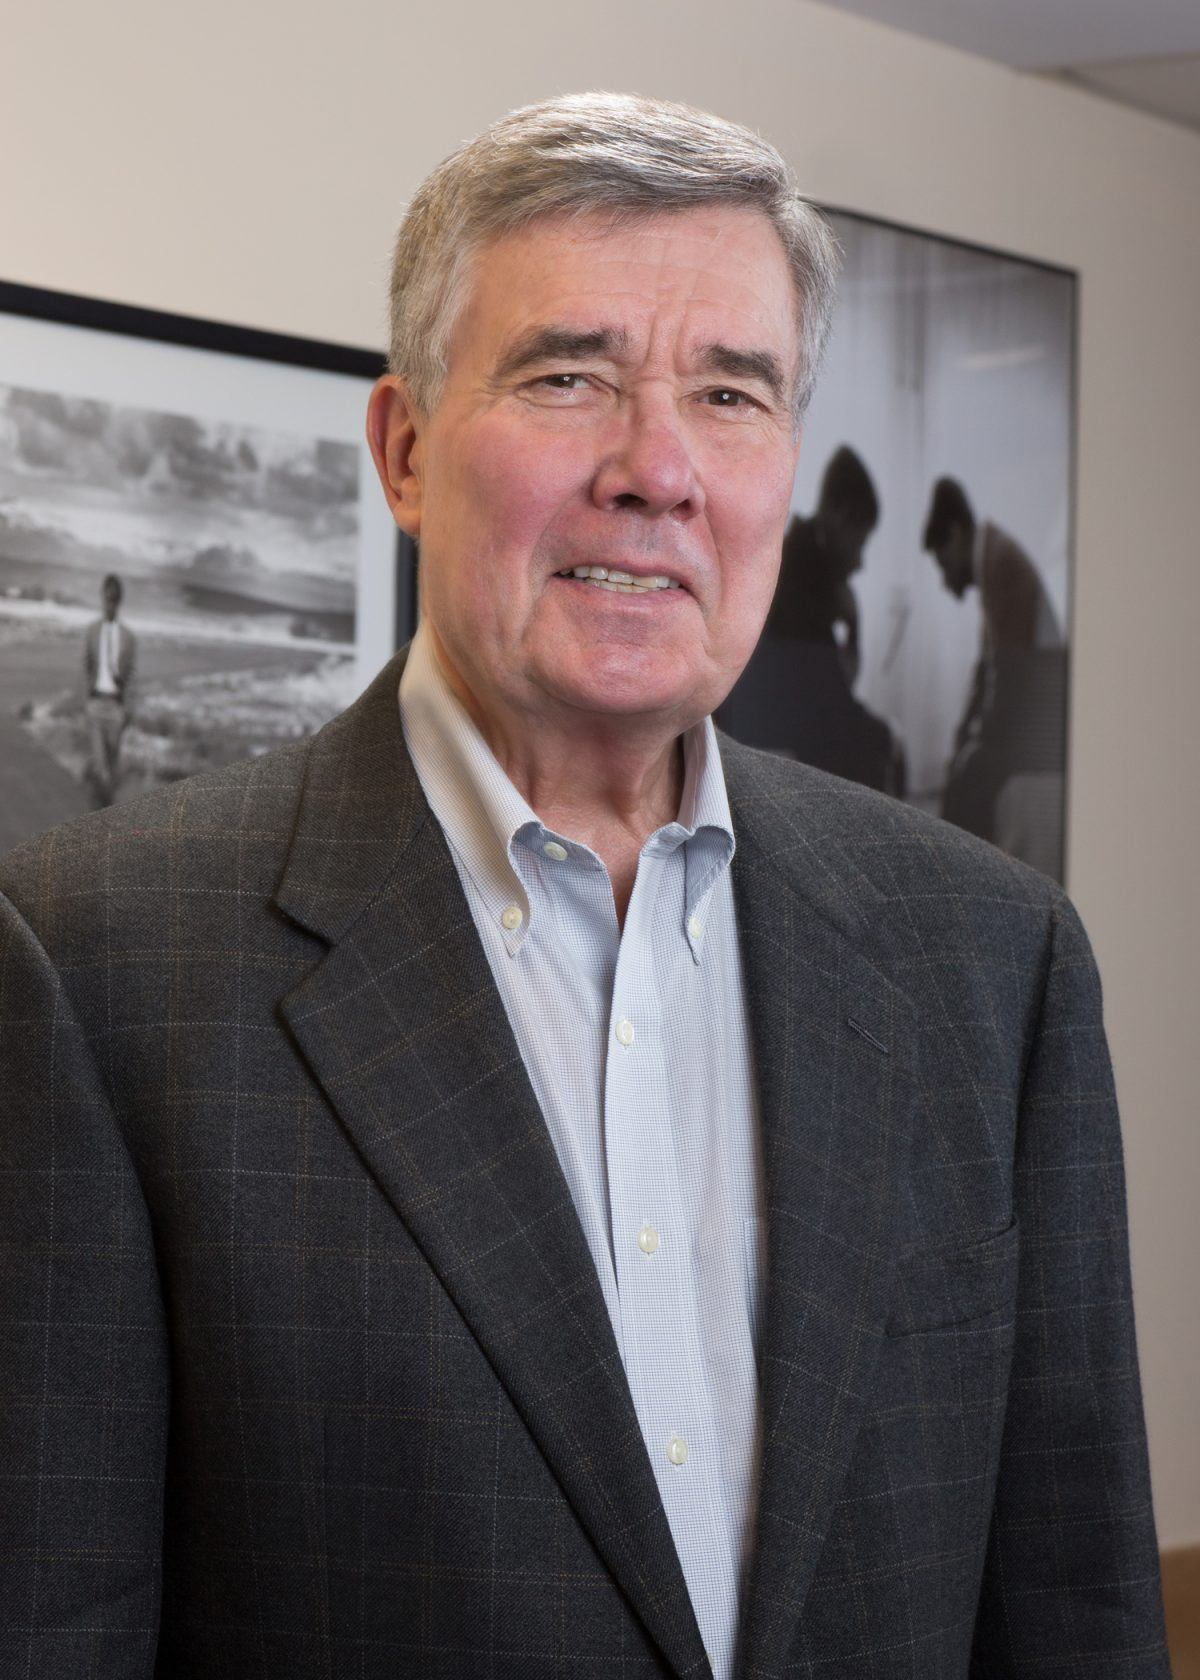 R. Gil Kerlikowske, Former Commissioner of U.S. Customs and Border Protection